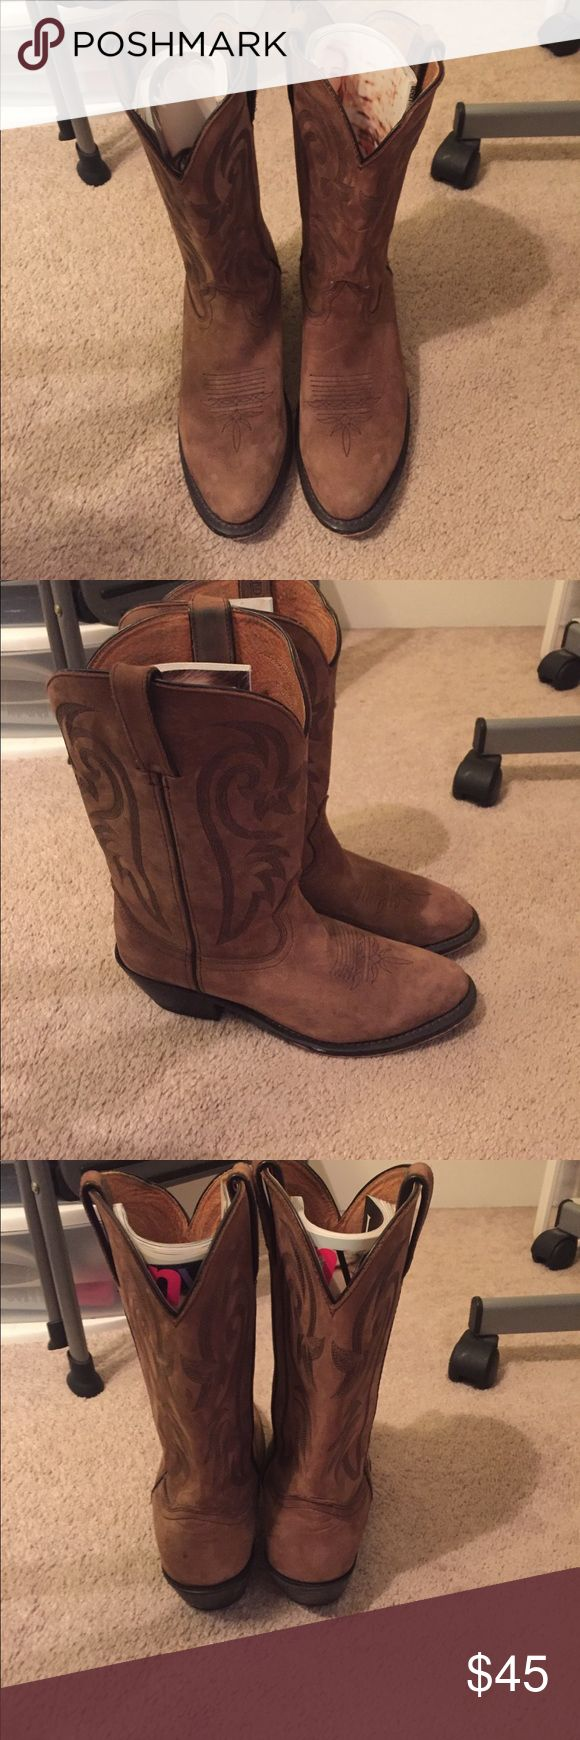 RedHead cowgirl Boots RedHead Boots in wonderful condition. Lightly used Shoes Heeled Boots